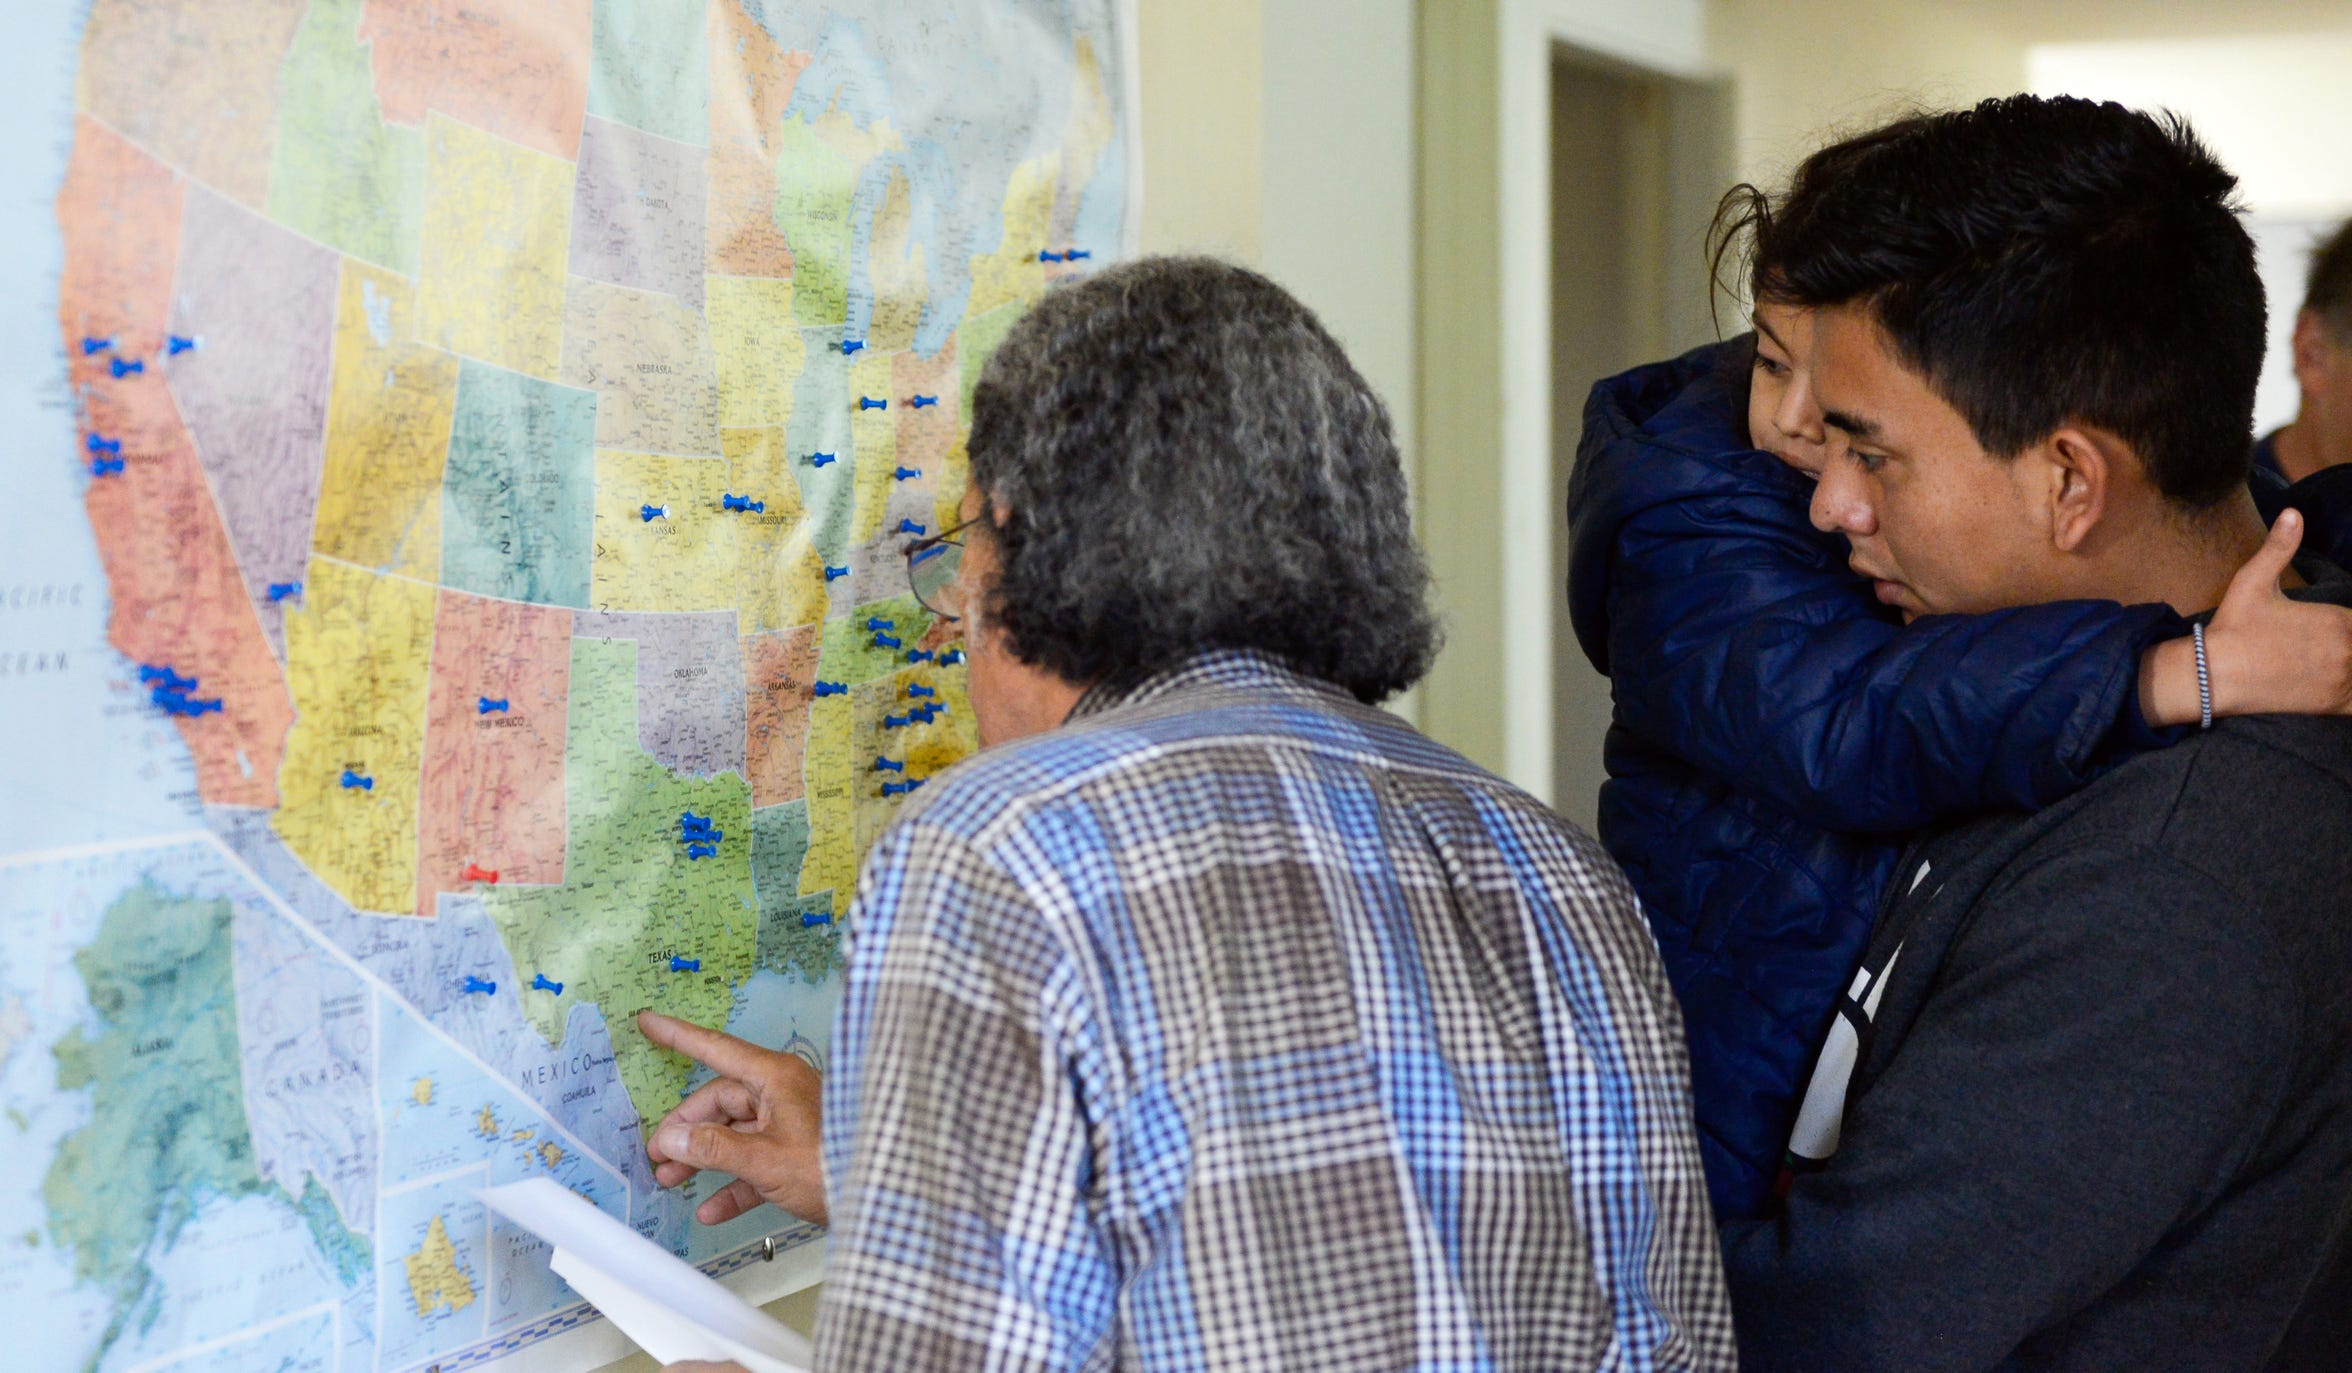 Anselmo Delgado-Martinez shows a migrant the route of his trip to live with family in December 2018 at El Calvario Methodist church in Las Cruces.